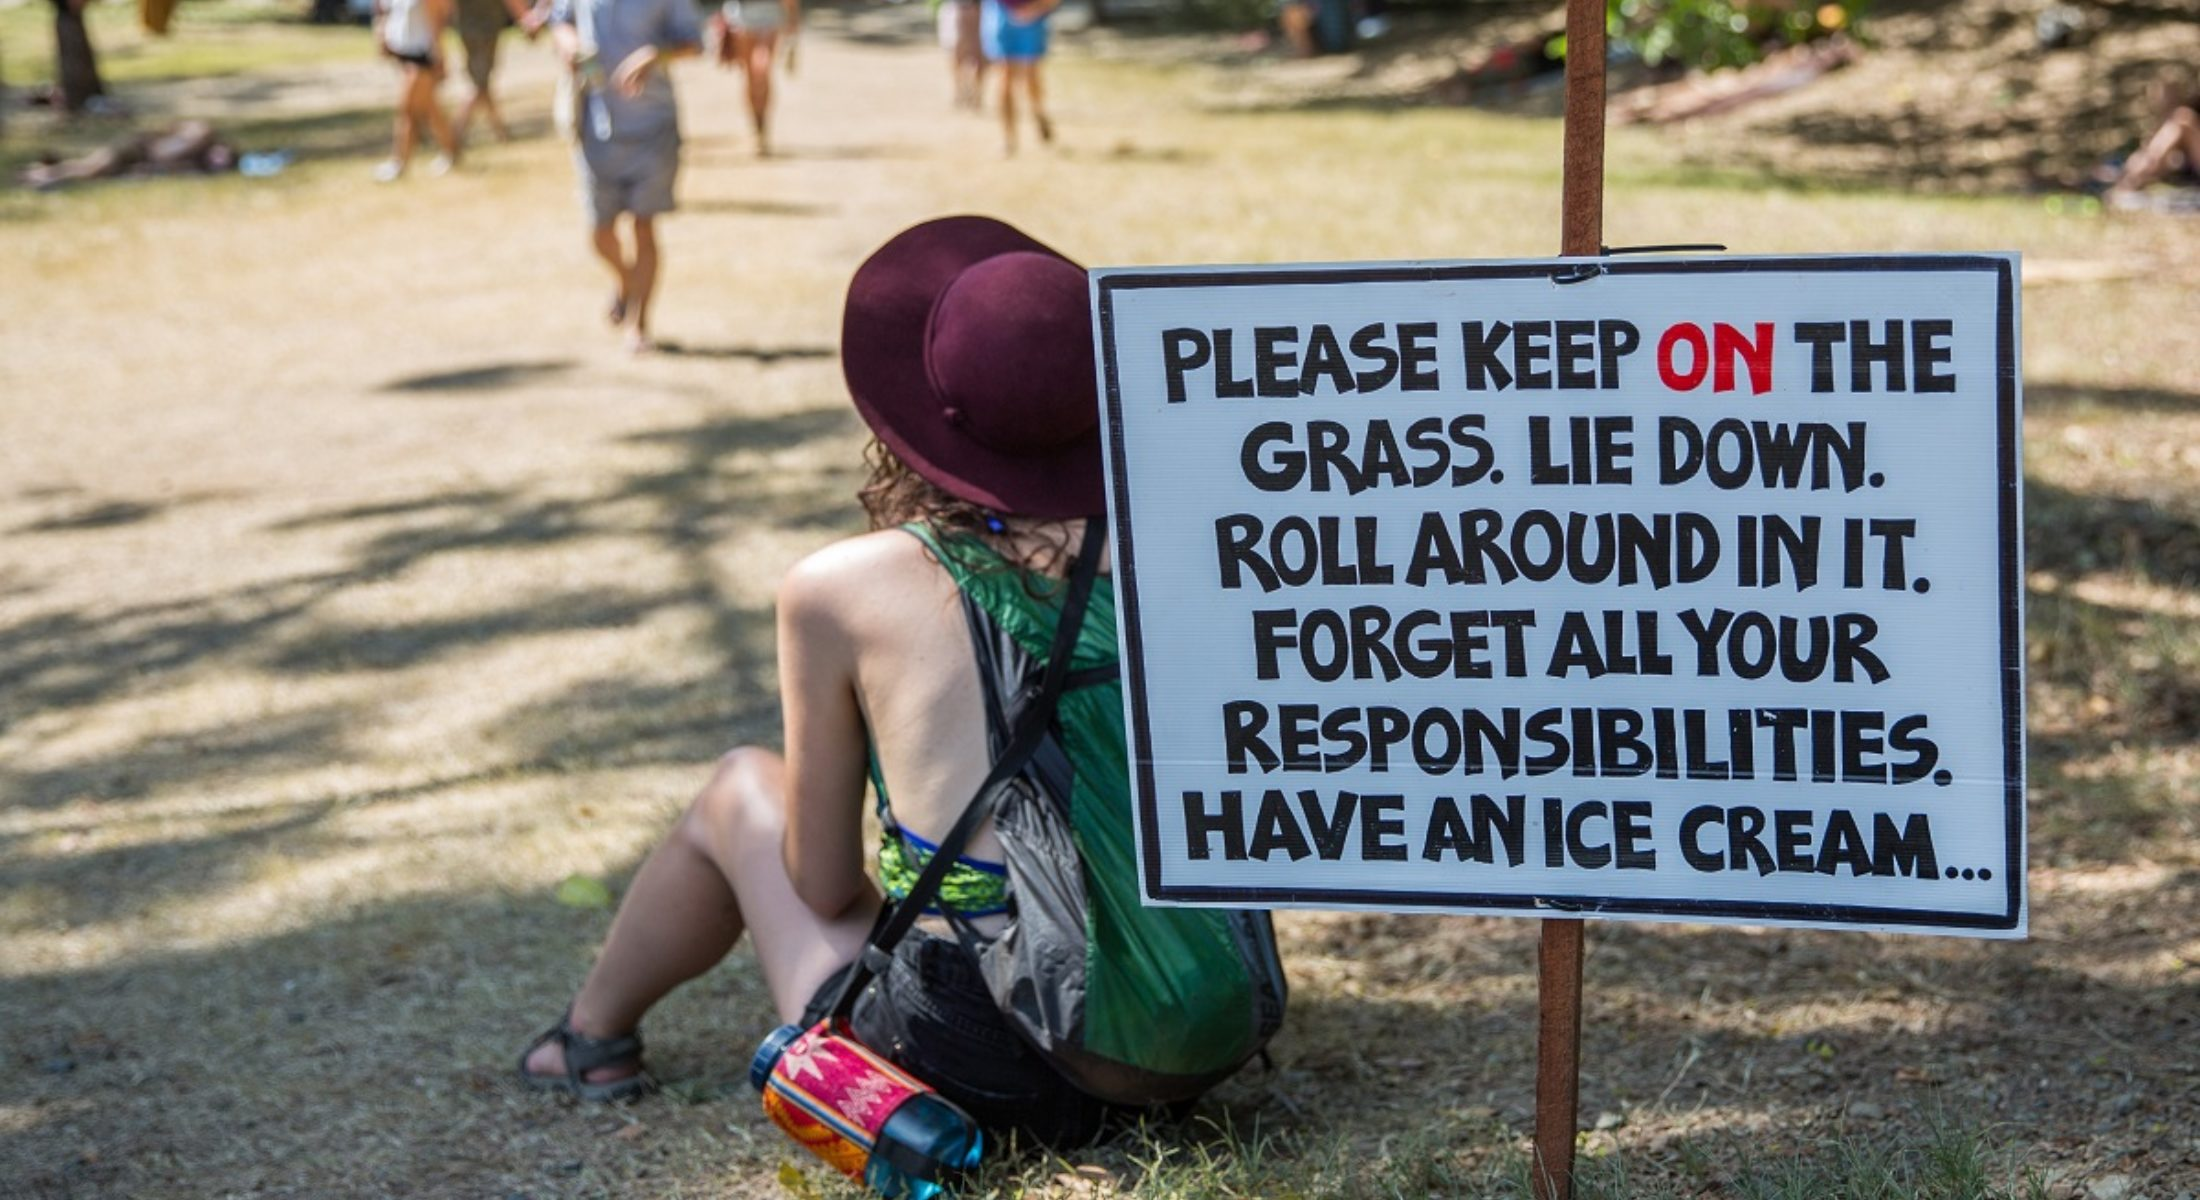 Woodford Folk Festival Keep On The Grass Sign Camping Music Festival Moreton Bay Region